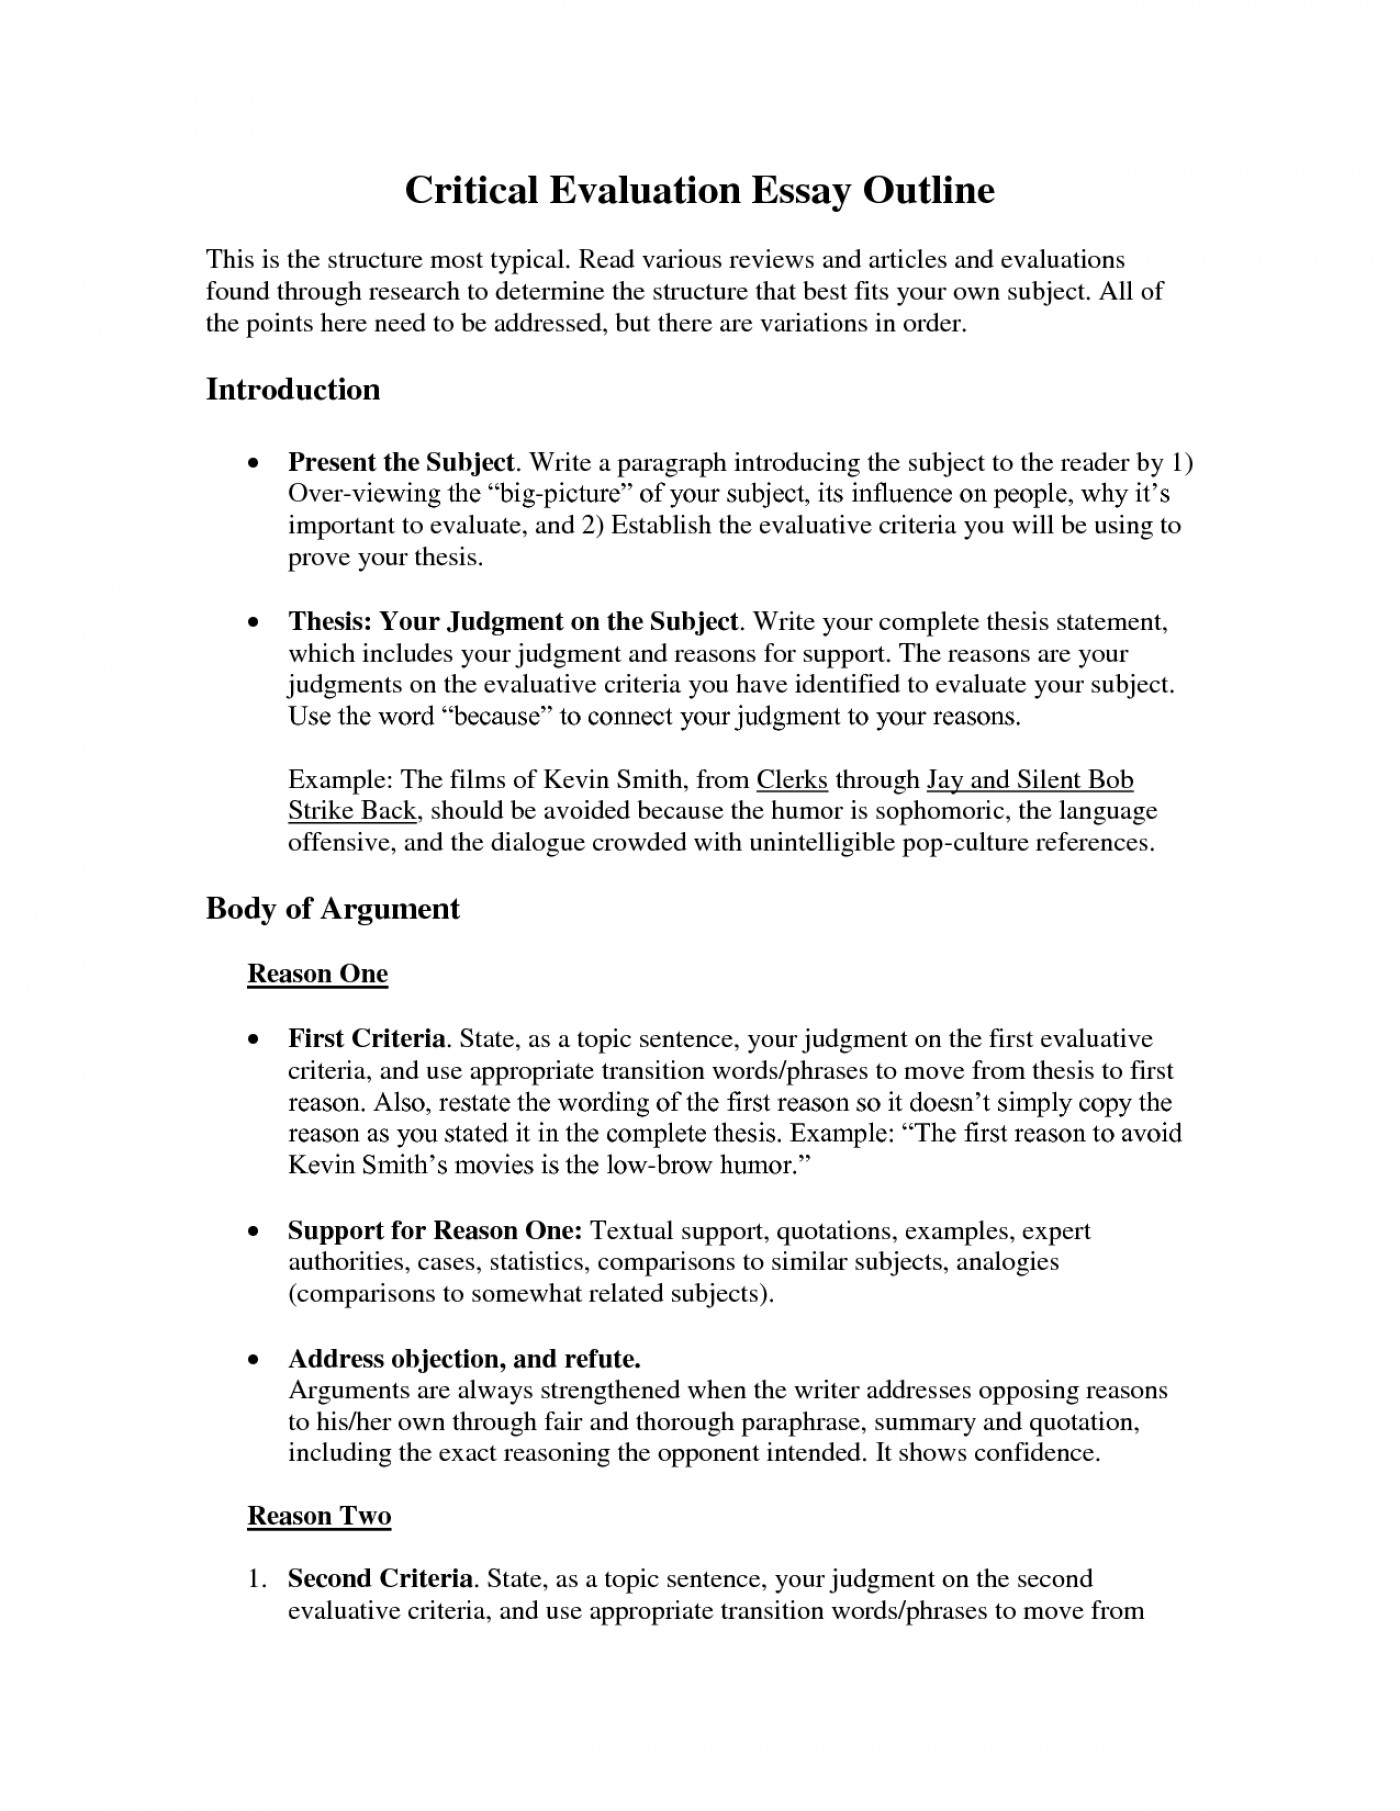 004 Critical Evaluation Essay Example Sample L Incredible Book Samples On Movies Self Format 1400